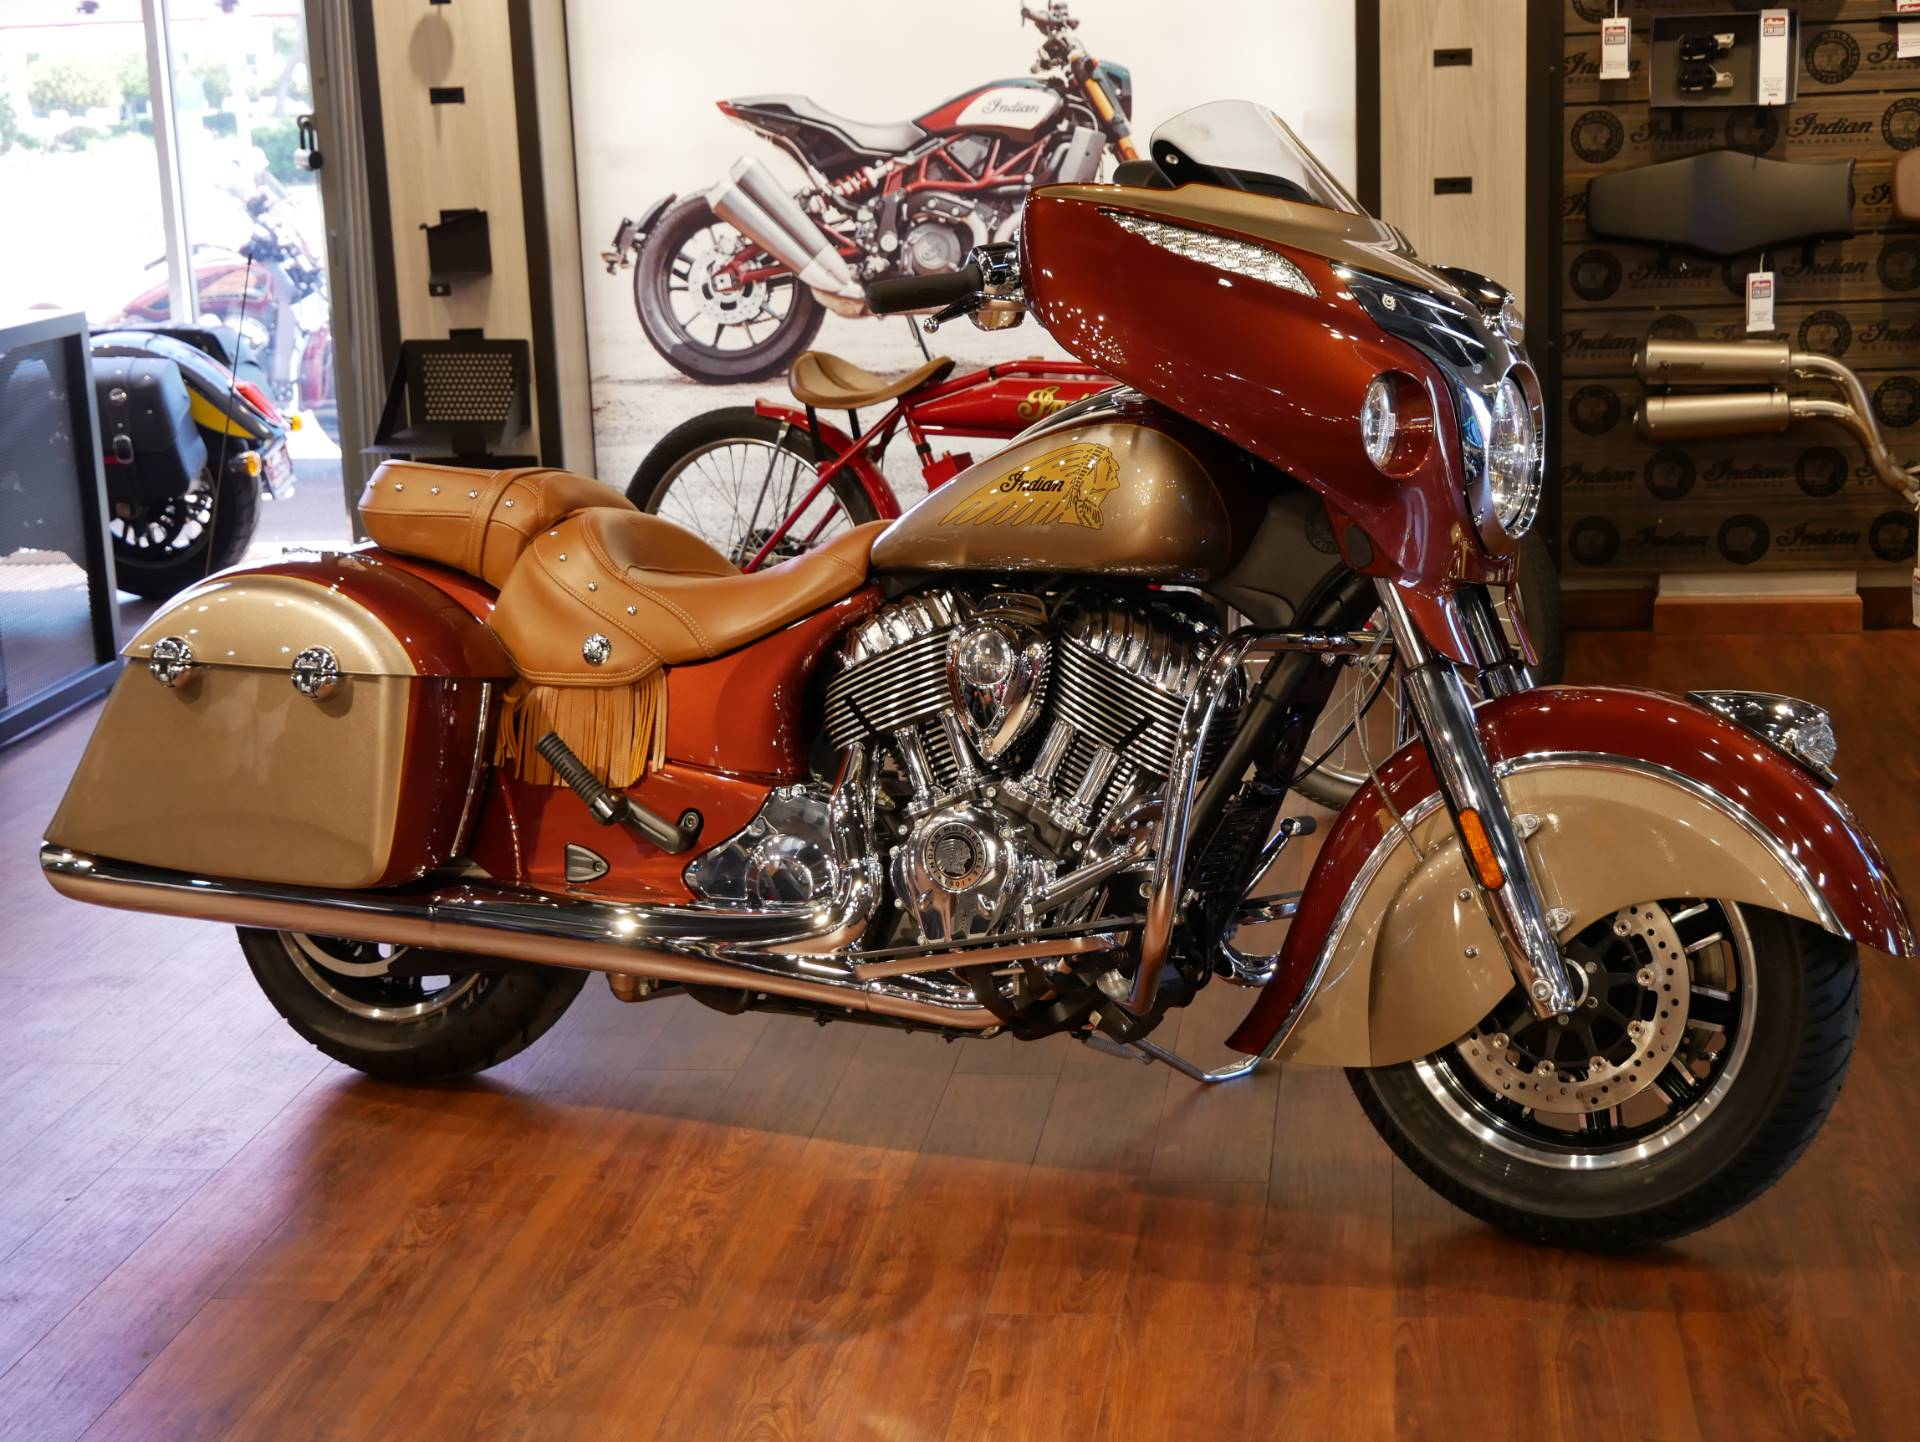 2019 Indian Chieftain® Classic Icon Series in San Diego, California - Photo 16